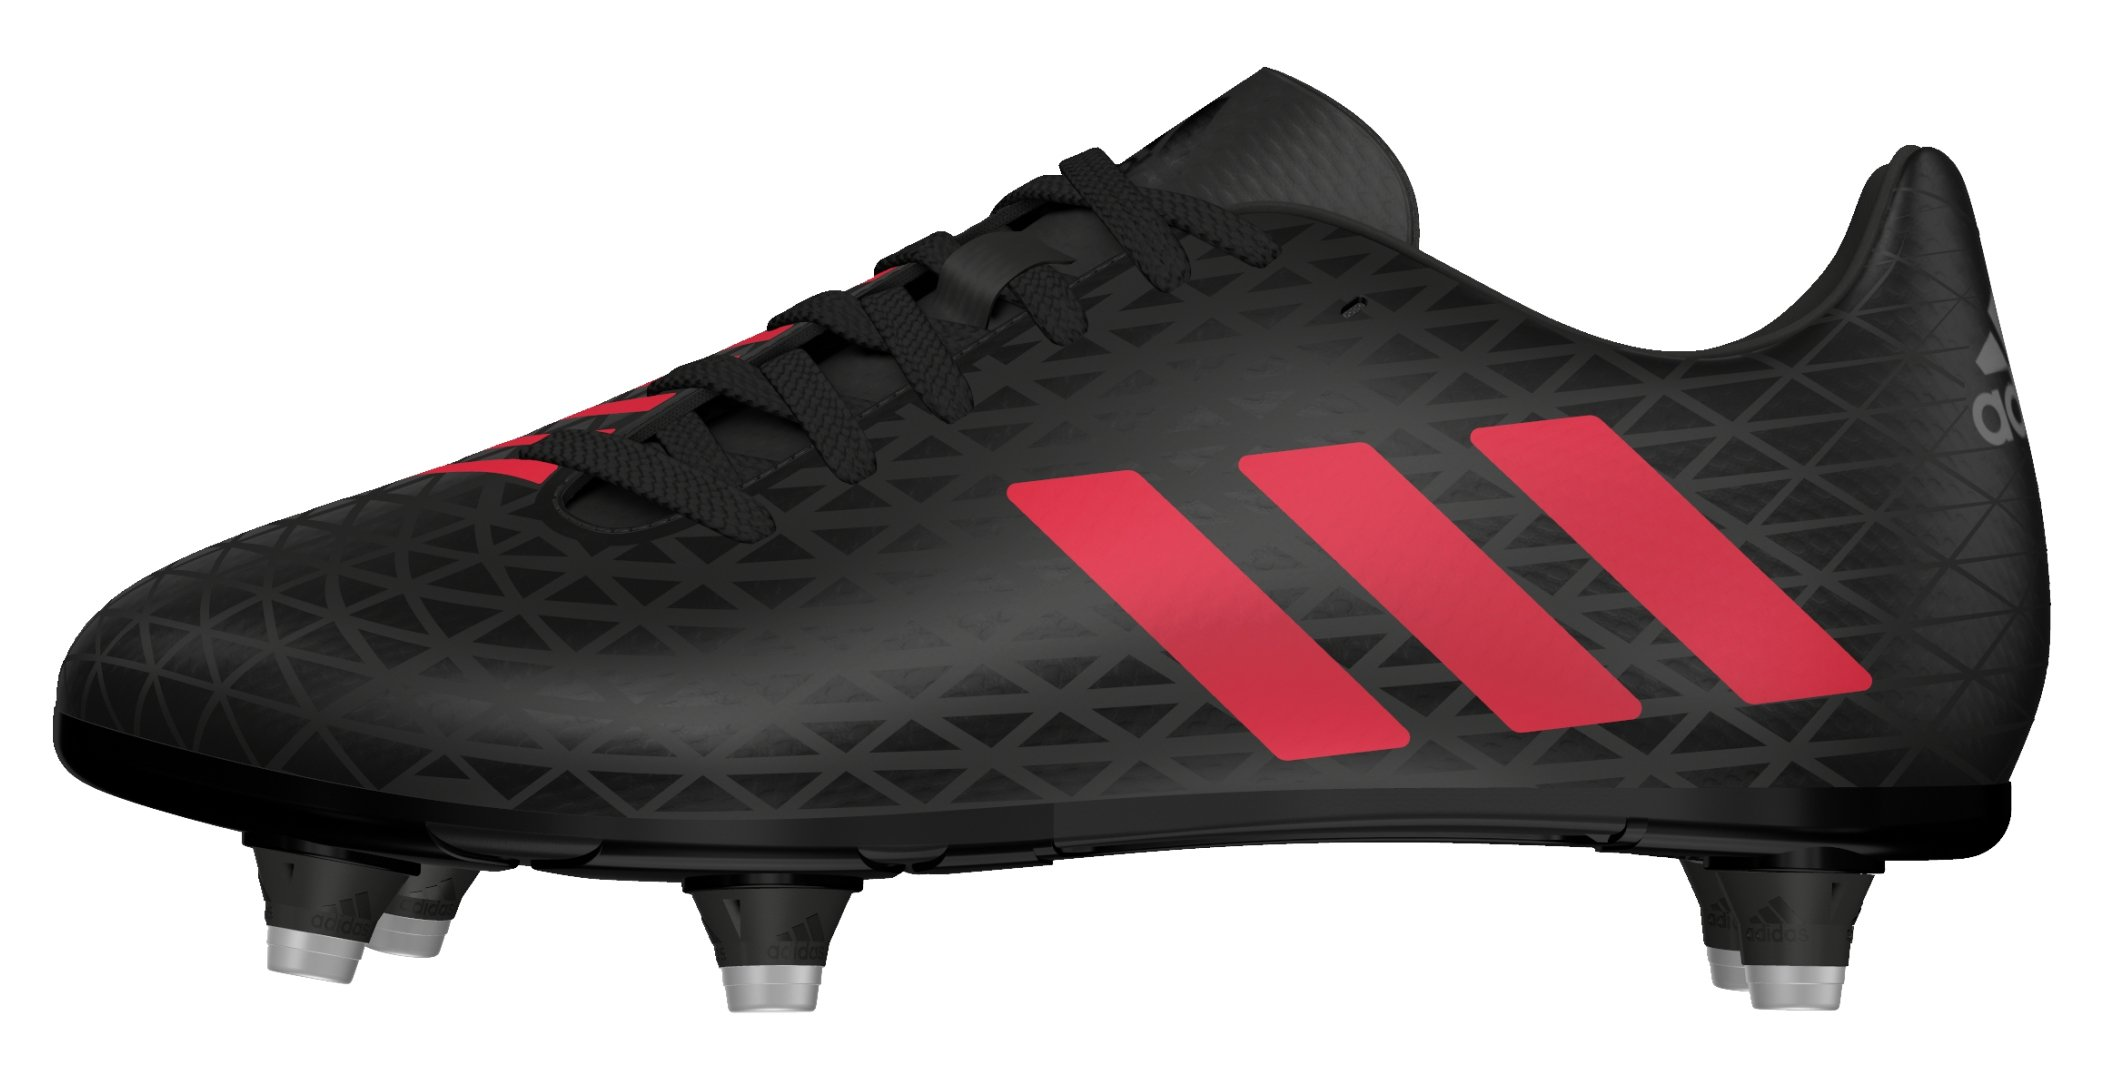 adidas AW16 Malice SG Junior Rugby Boots - Black/Shock Red - Black/Red - UK 3